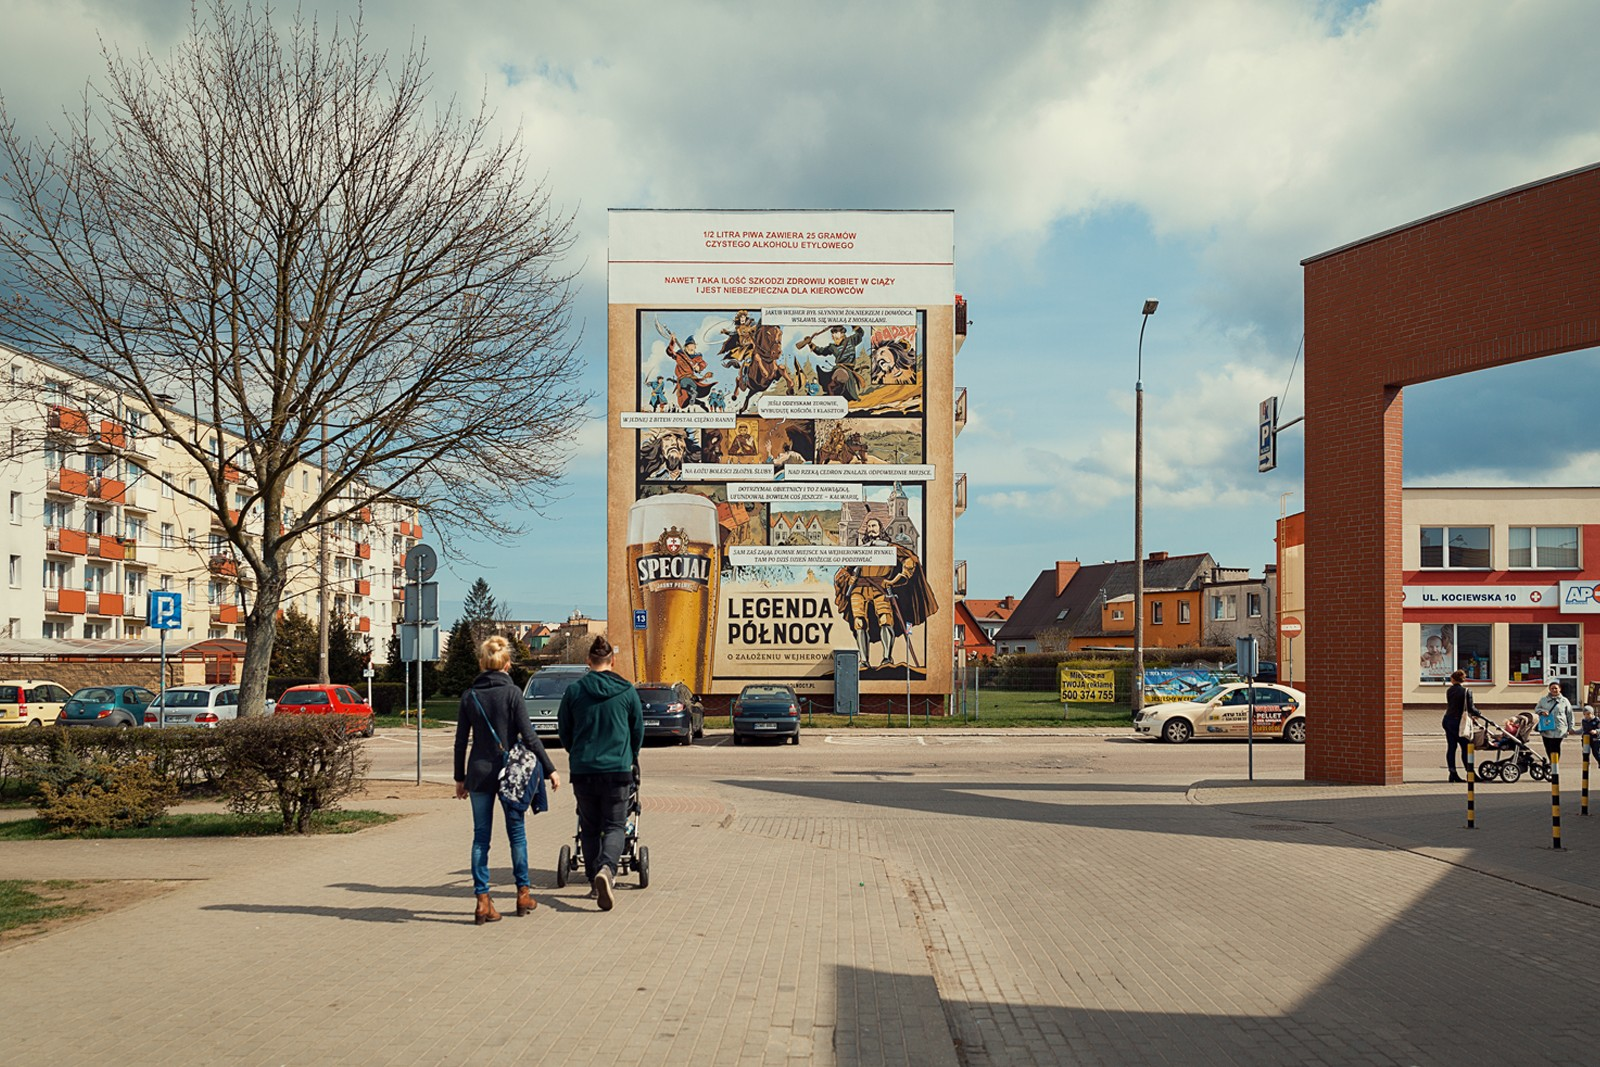 Mural in Wejherowo in a Northern Legends advertising campaign for Specjal beer brand | Specjal - Legenda Północy | Portfolio